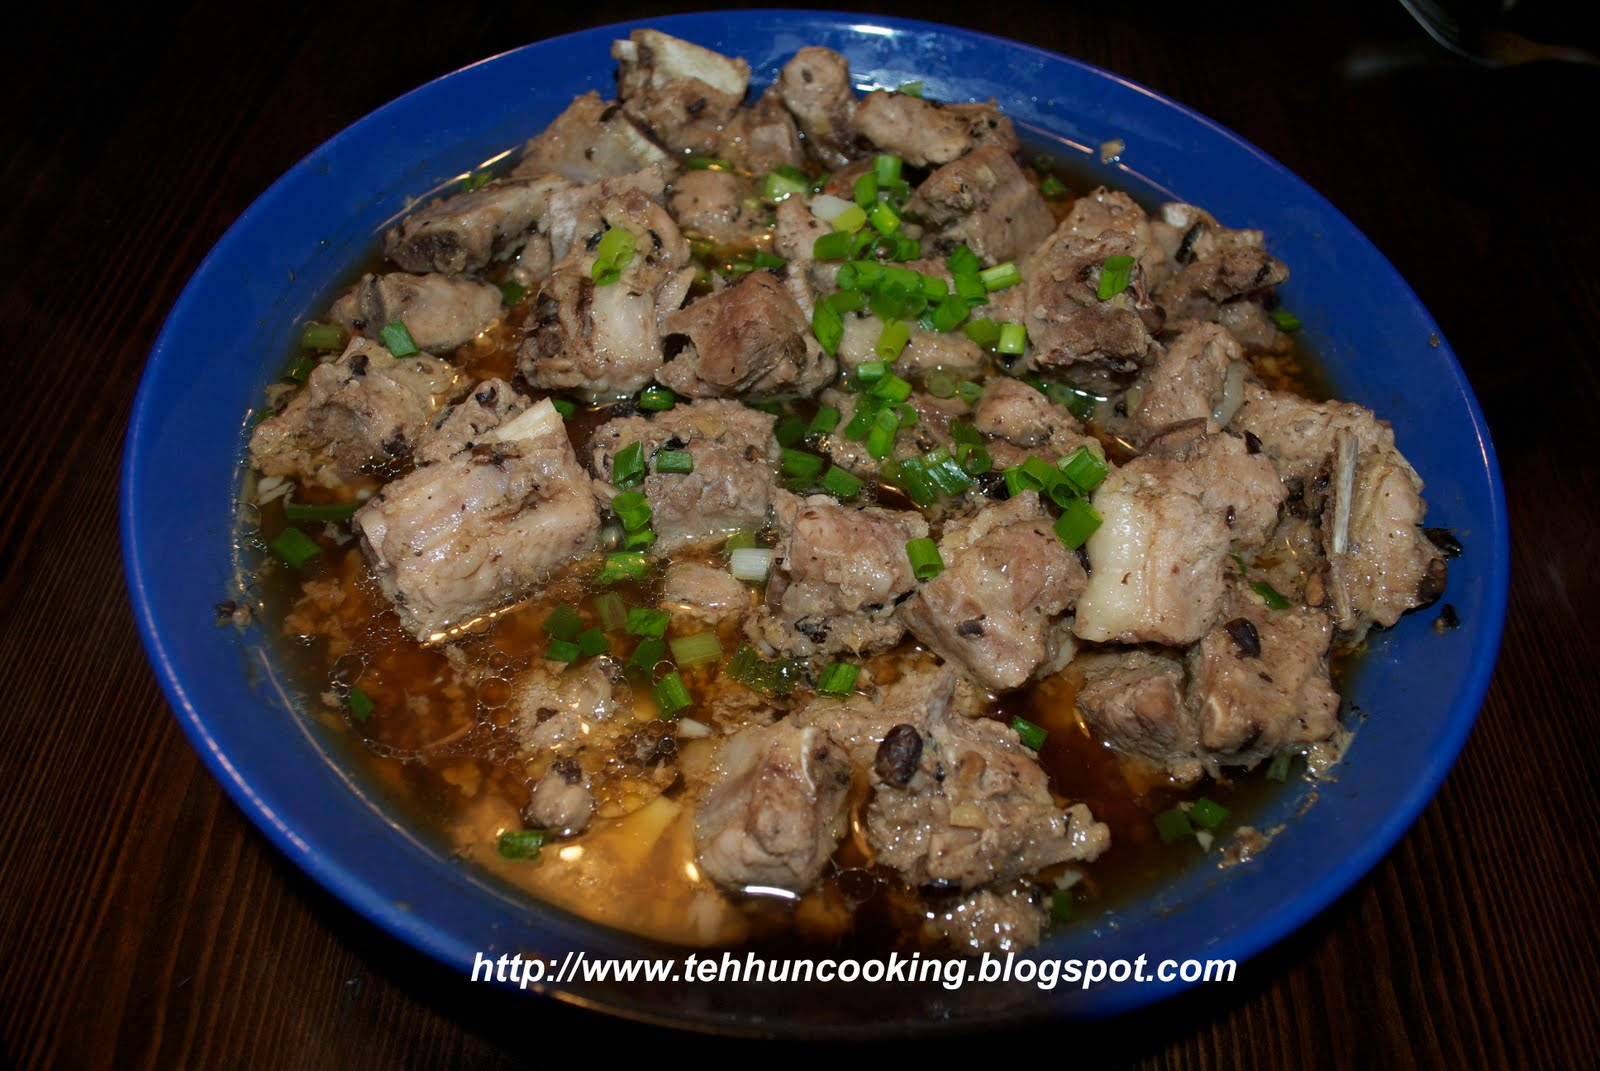 tehhun's Kitchen: Steam Pork Ribs with Black Bean 豆豉蒸排骨